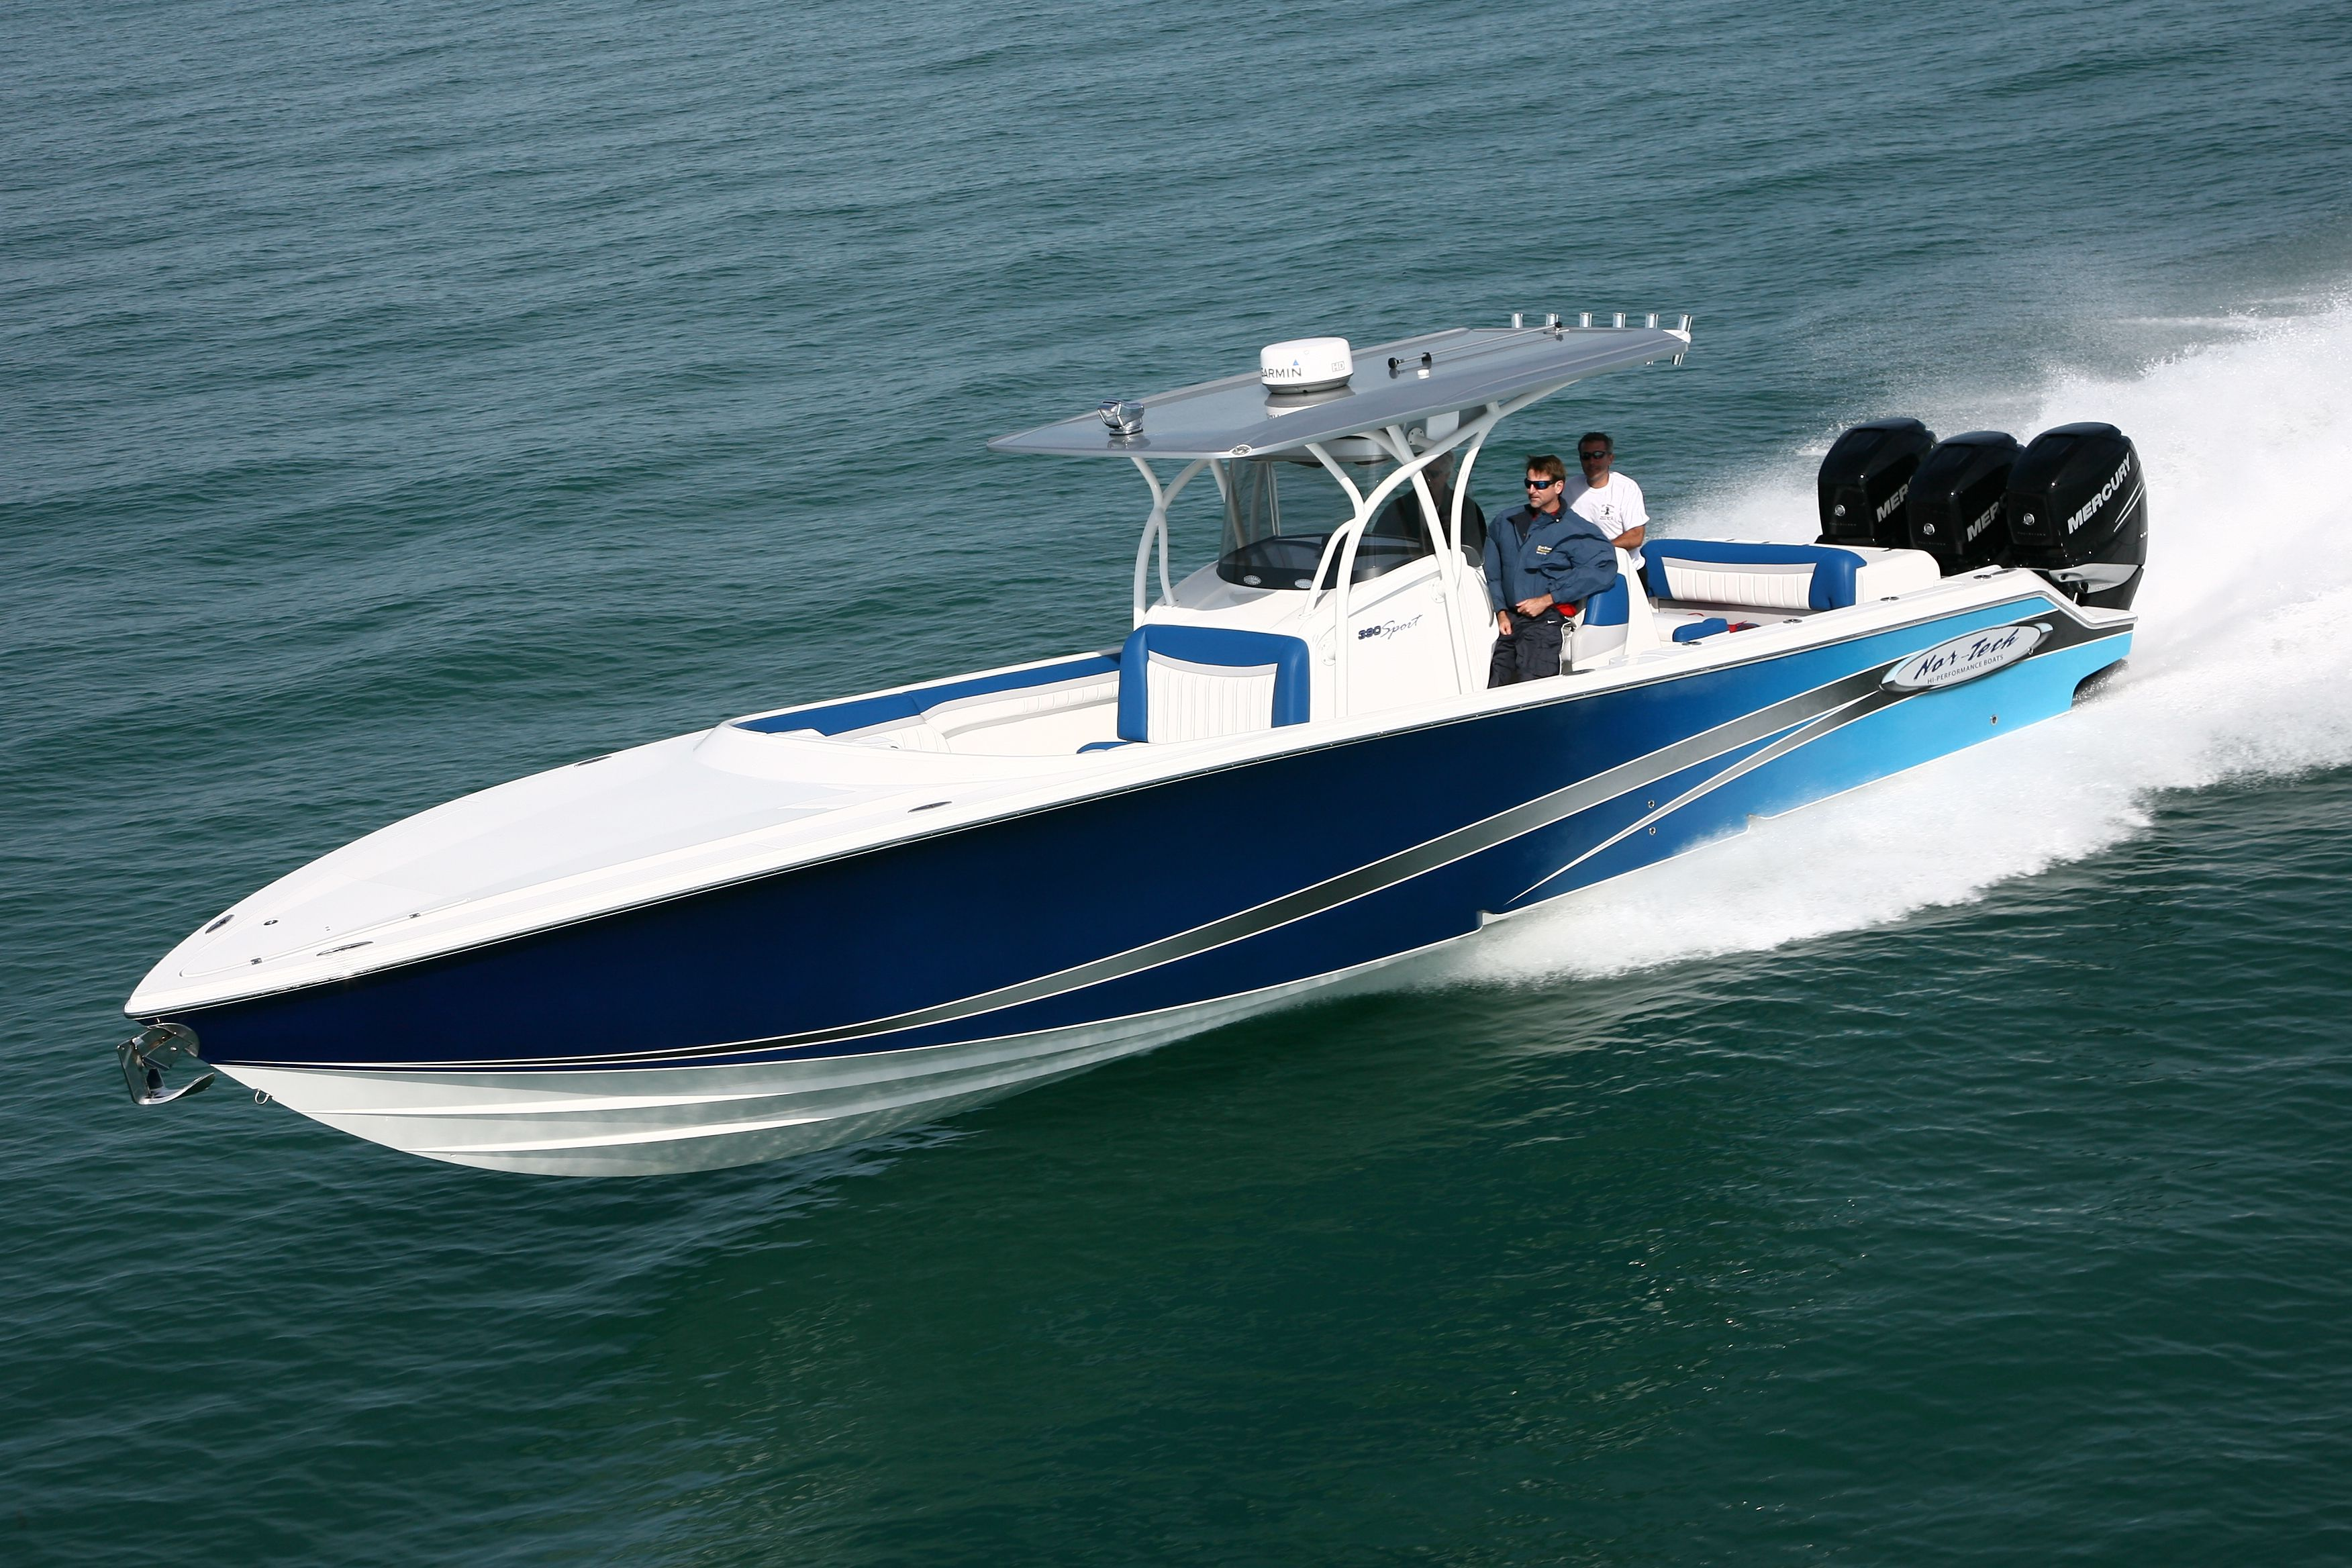 As of today this is the fastest console boat Nor Tech has built a